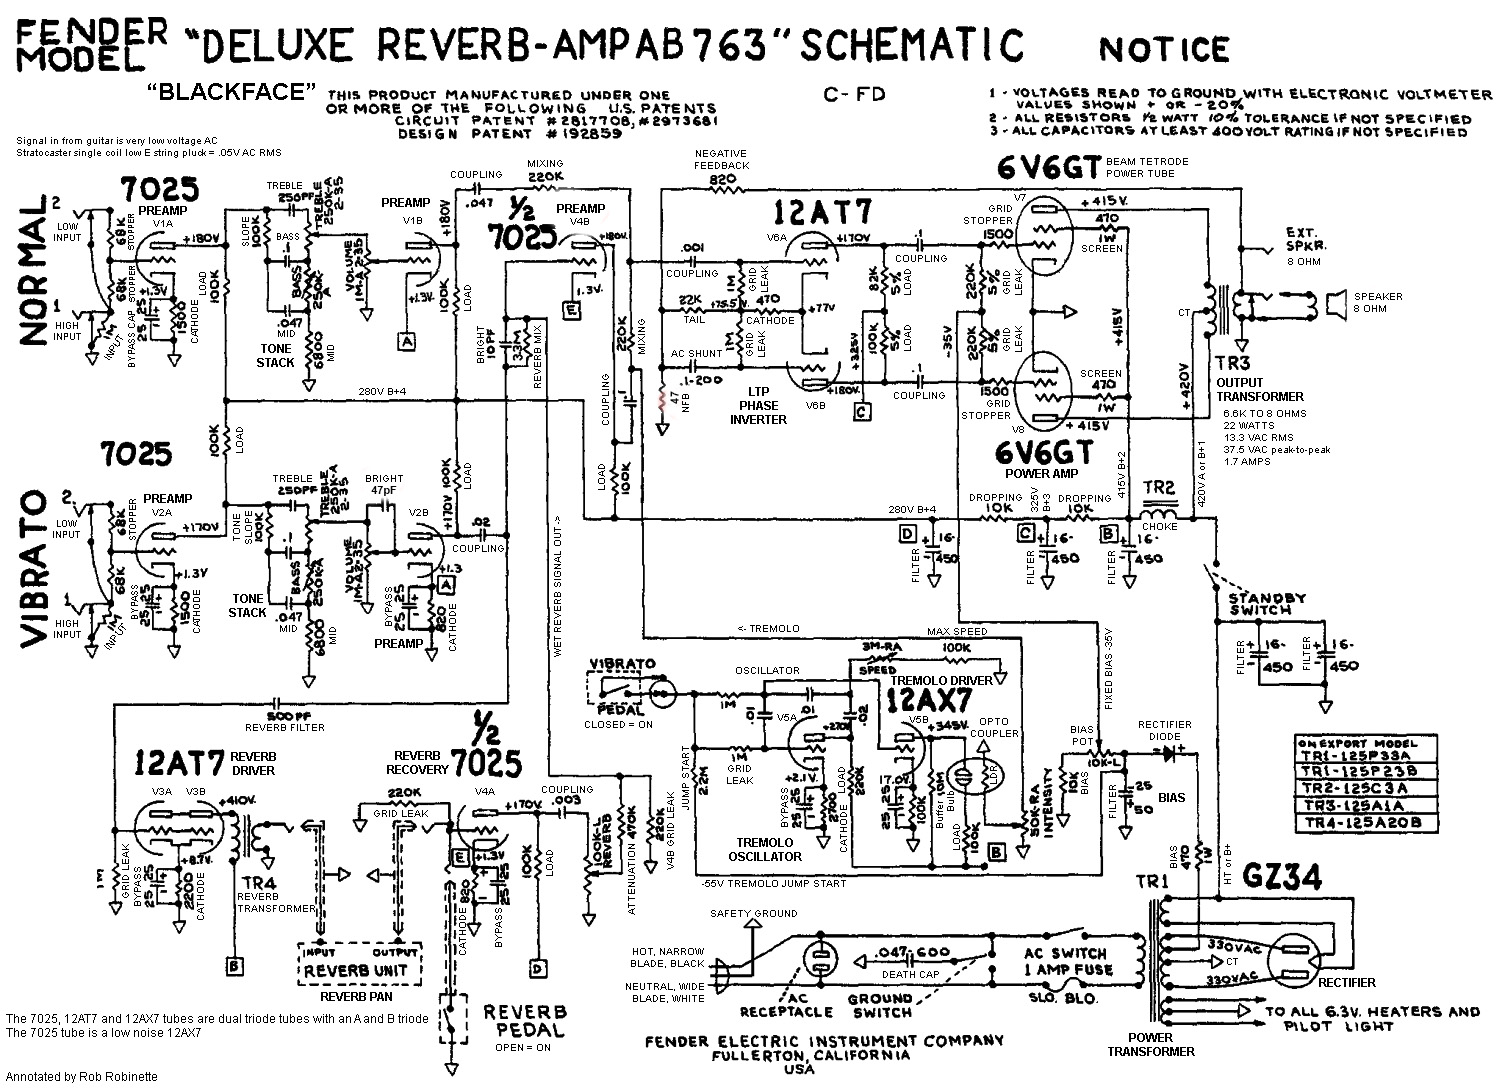 hight resolution of how the ab763 works wiring light switch with pilot on fender 68 deluxe reverb schematic